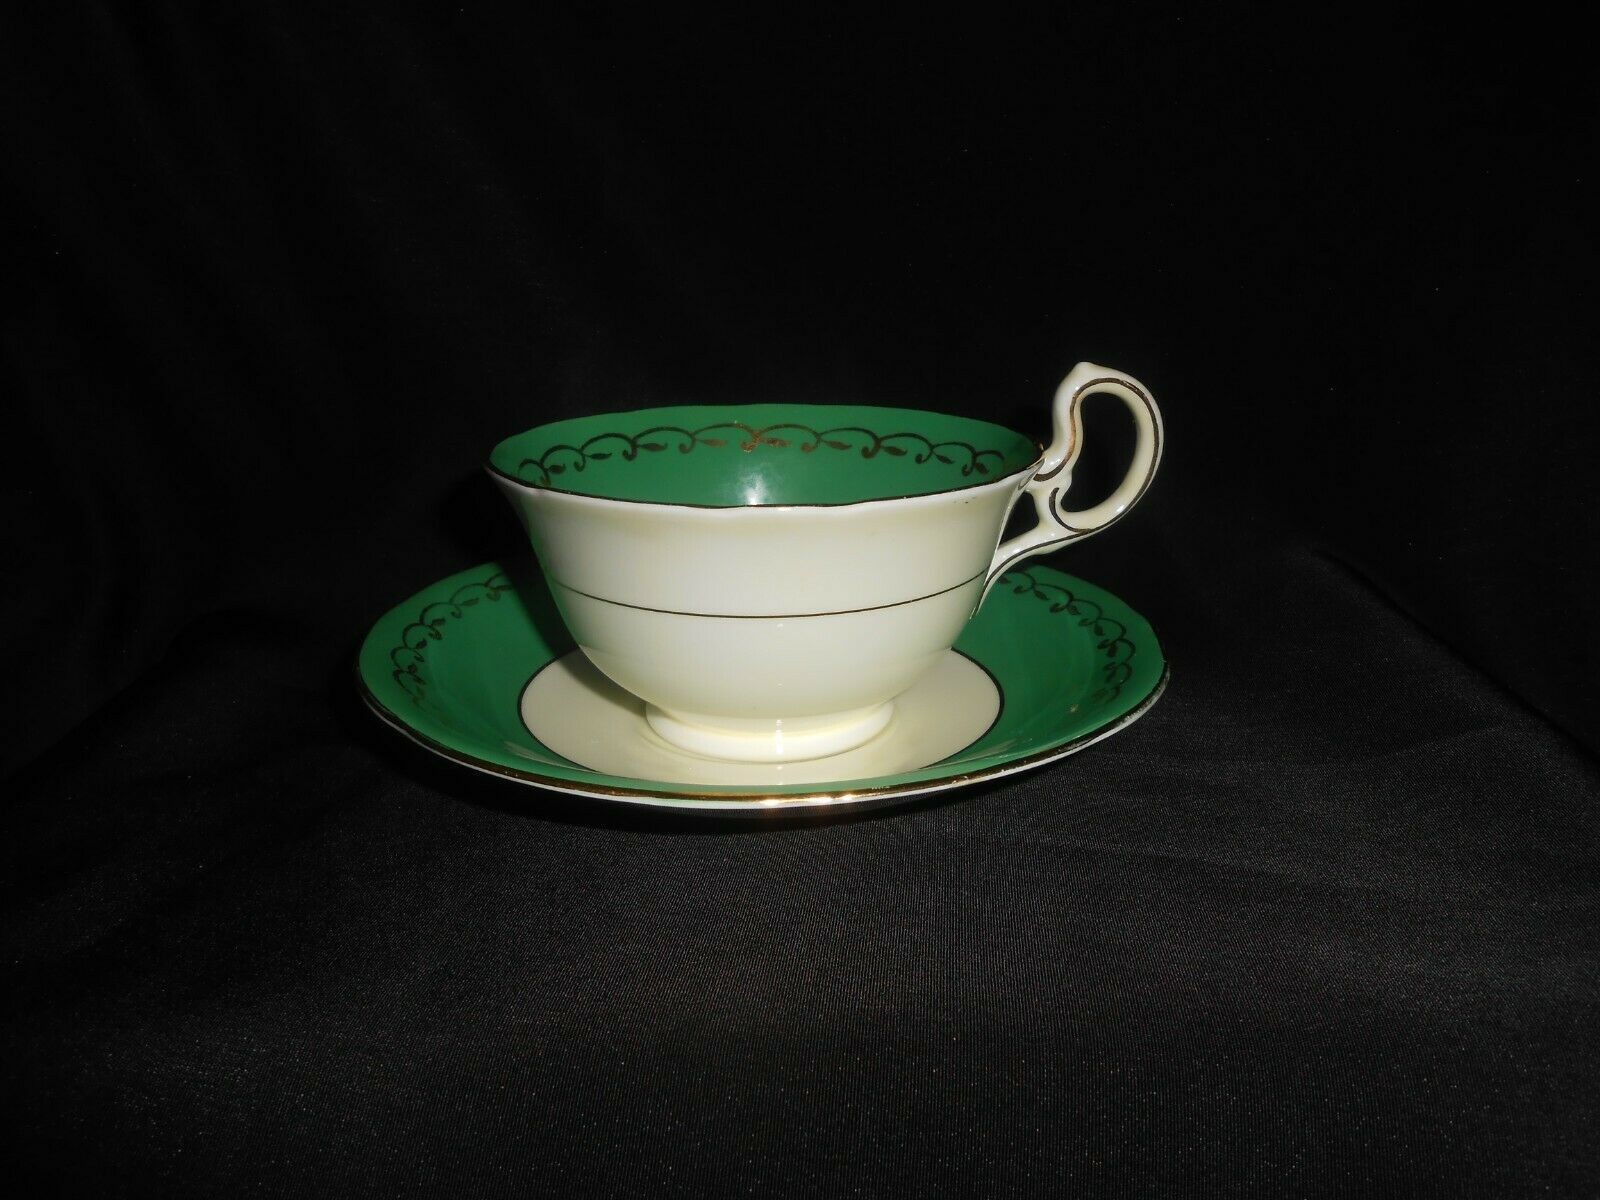 Aynsley Teacup and Saucer Green Gold Open Roses Vintage Floral Tea Cup & Saucer image 3